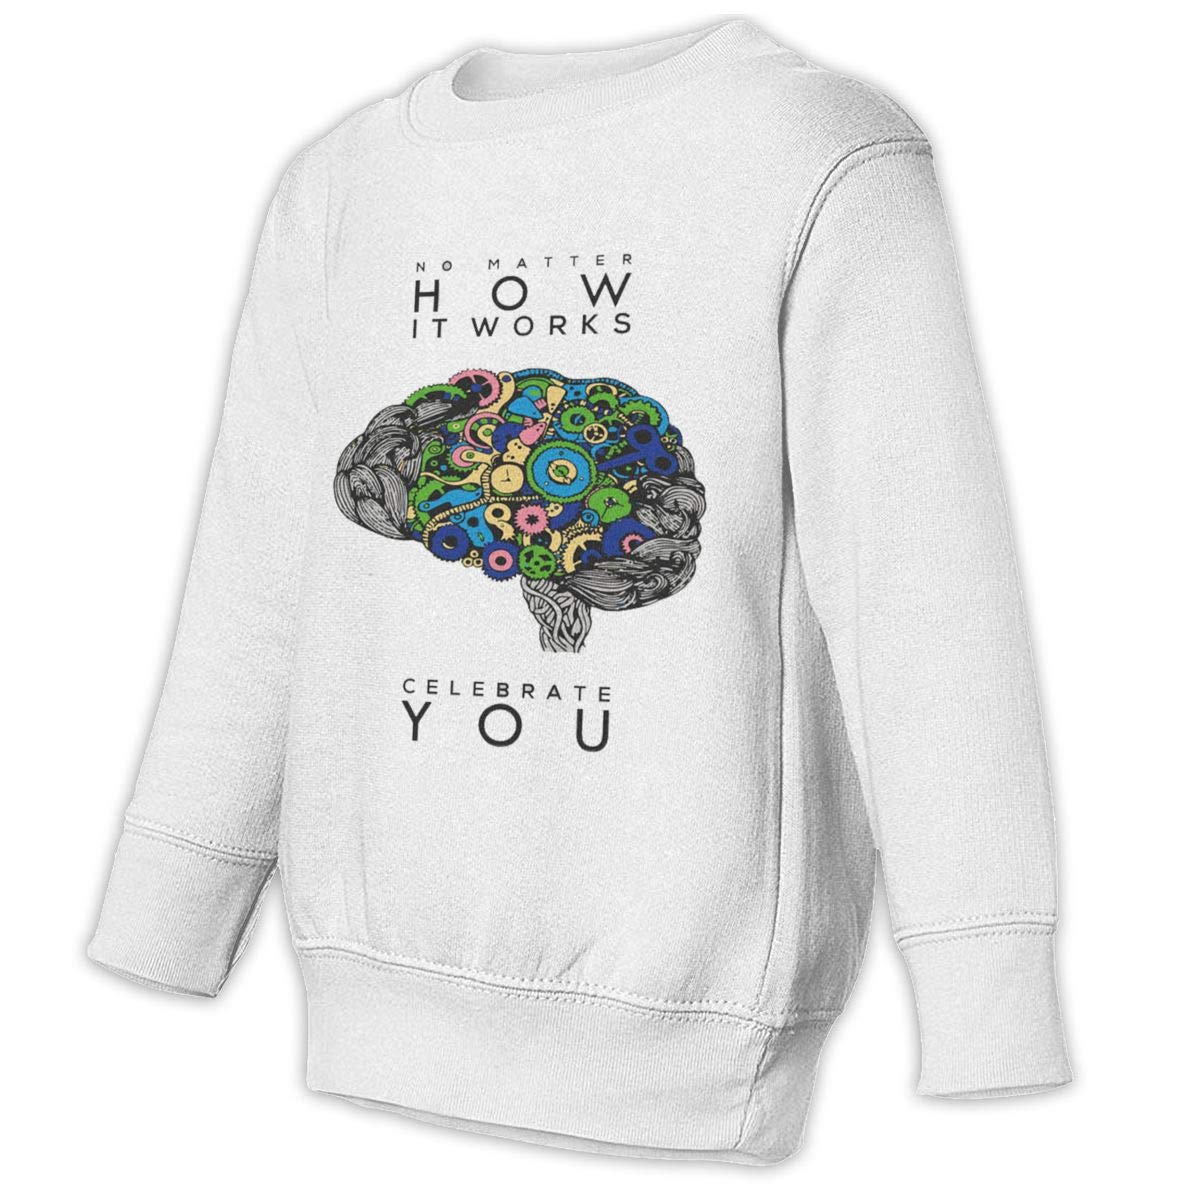 Yuliang NO MATTER HOW IT WORKS CELEBRATE YOU Children Fashion Sweater White